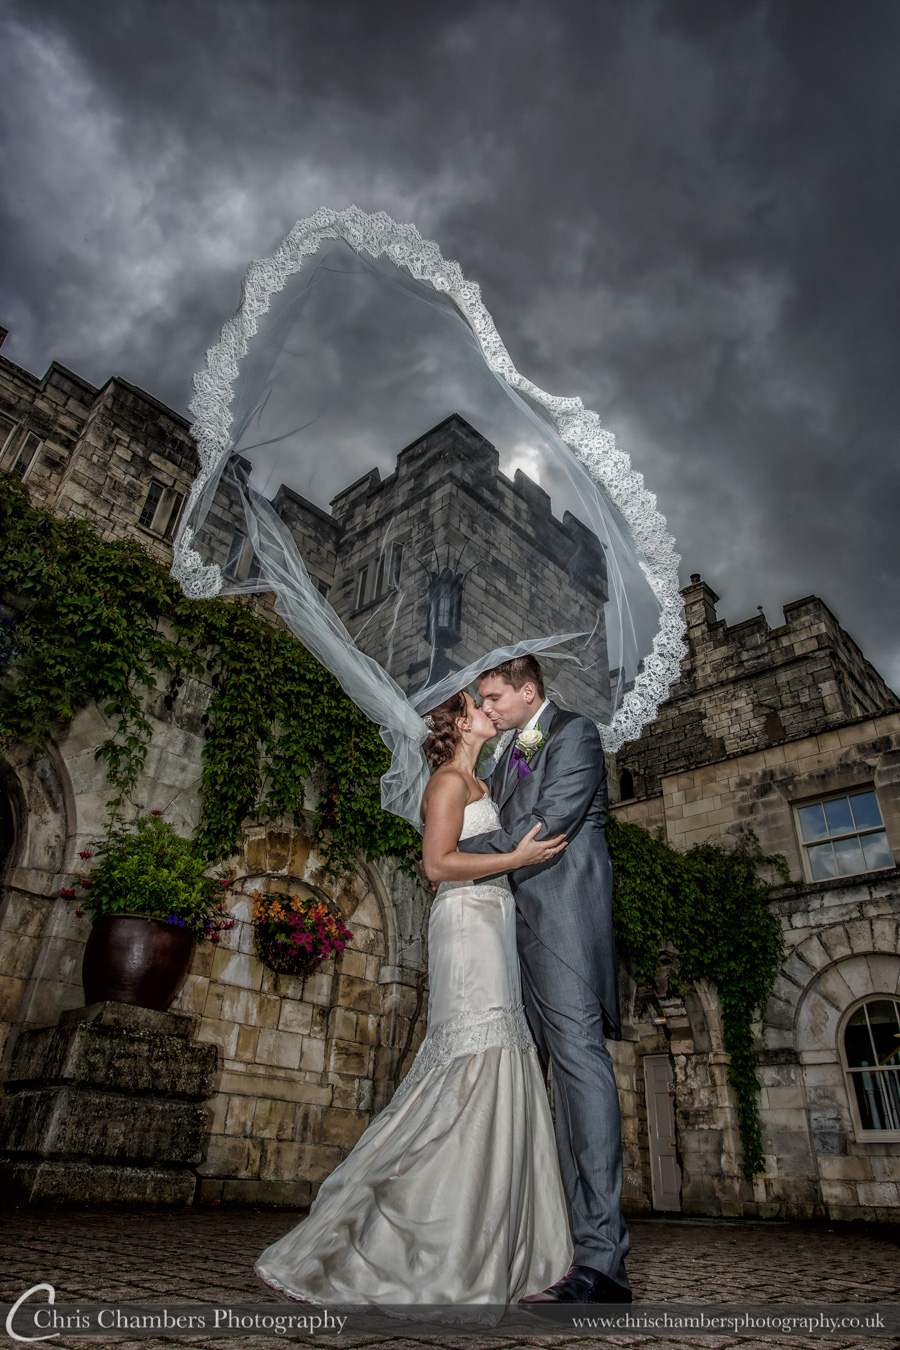 Hazlewood Castle Wedding Photographer in North Yorkshire | Hazlewood Castle Wedding Photographer in North Yorkshire | Award Winning Wedding Photographer | Hazlewood Castle Wedding Photographs